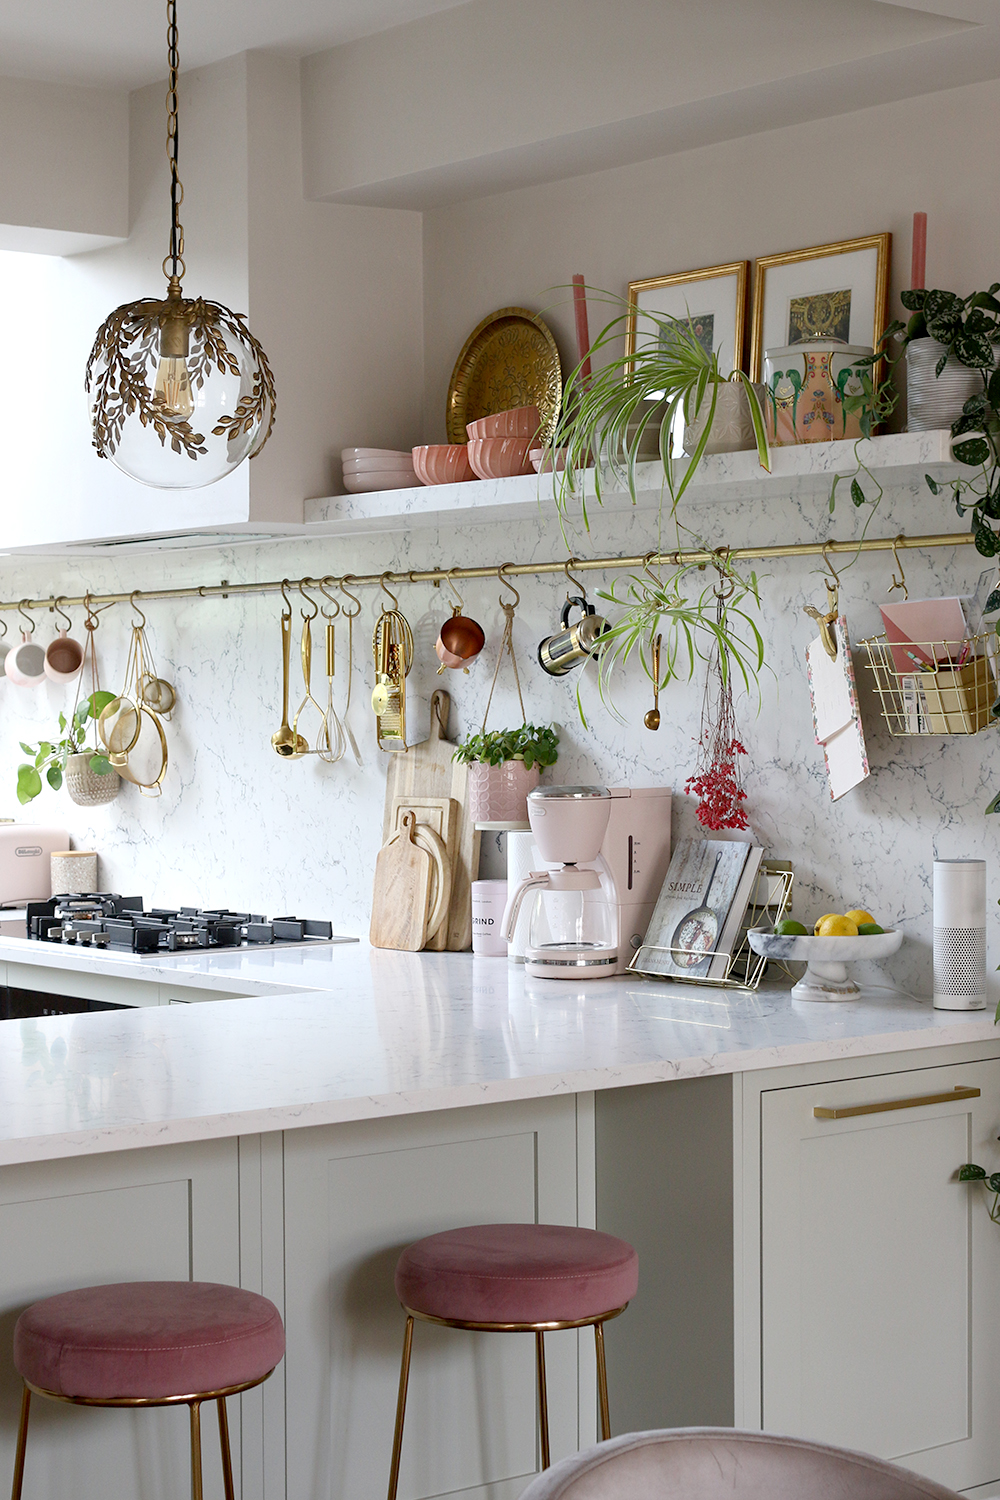 marble kitchen shelf styling with vintage lighting